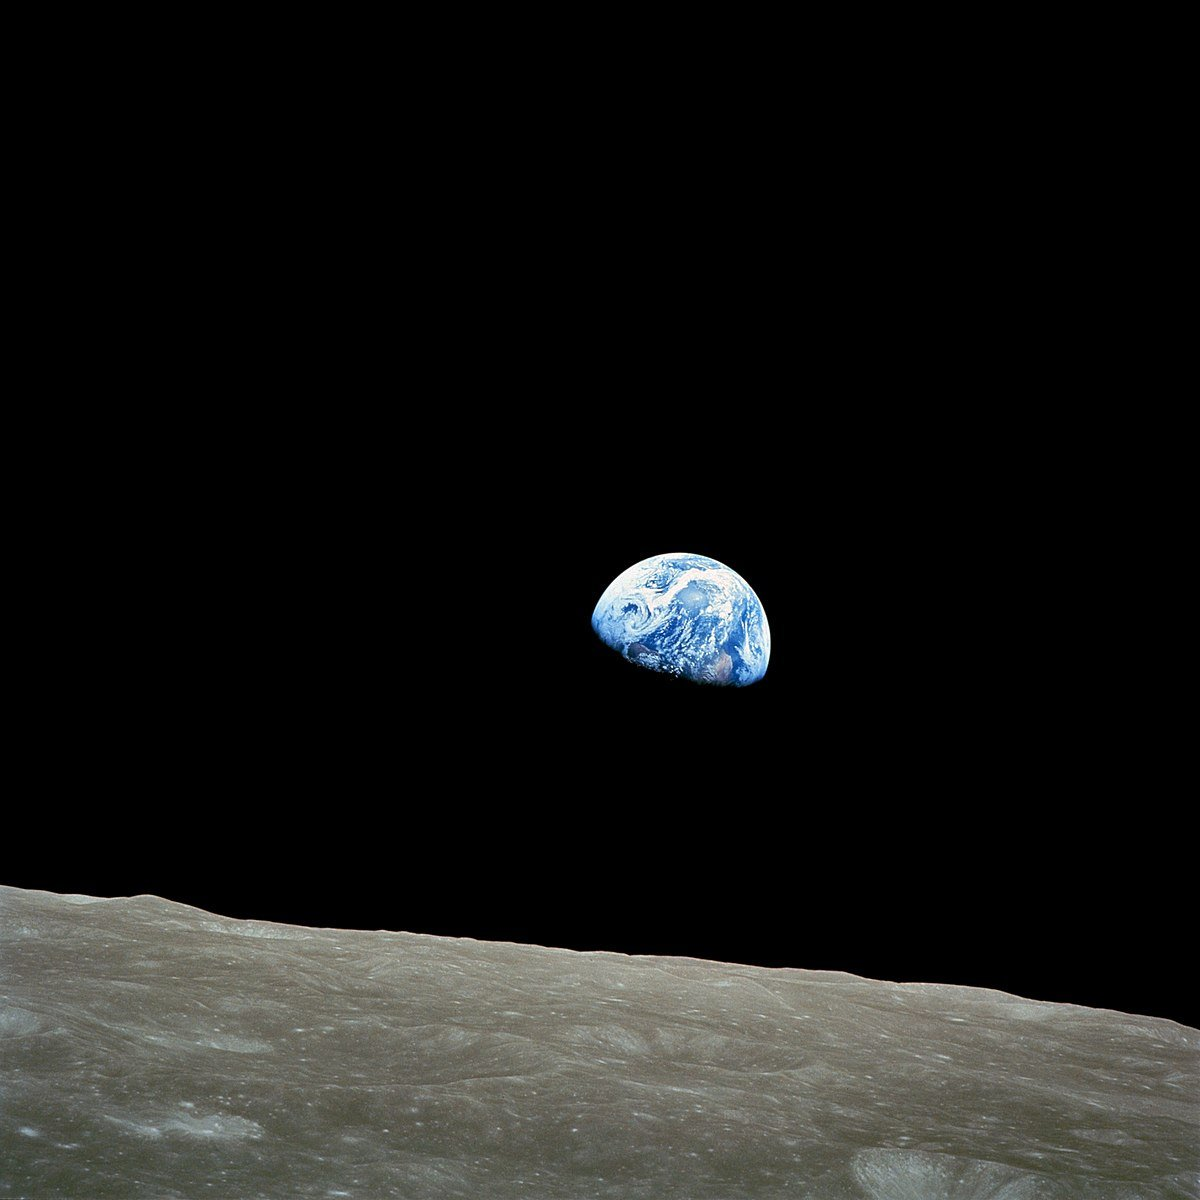 Earthrise, the first photo of the earth from the moon.